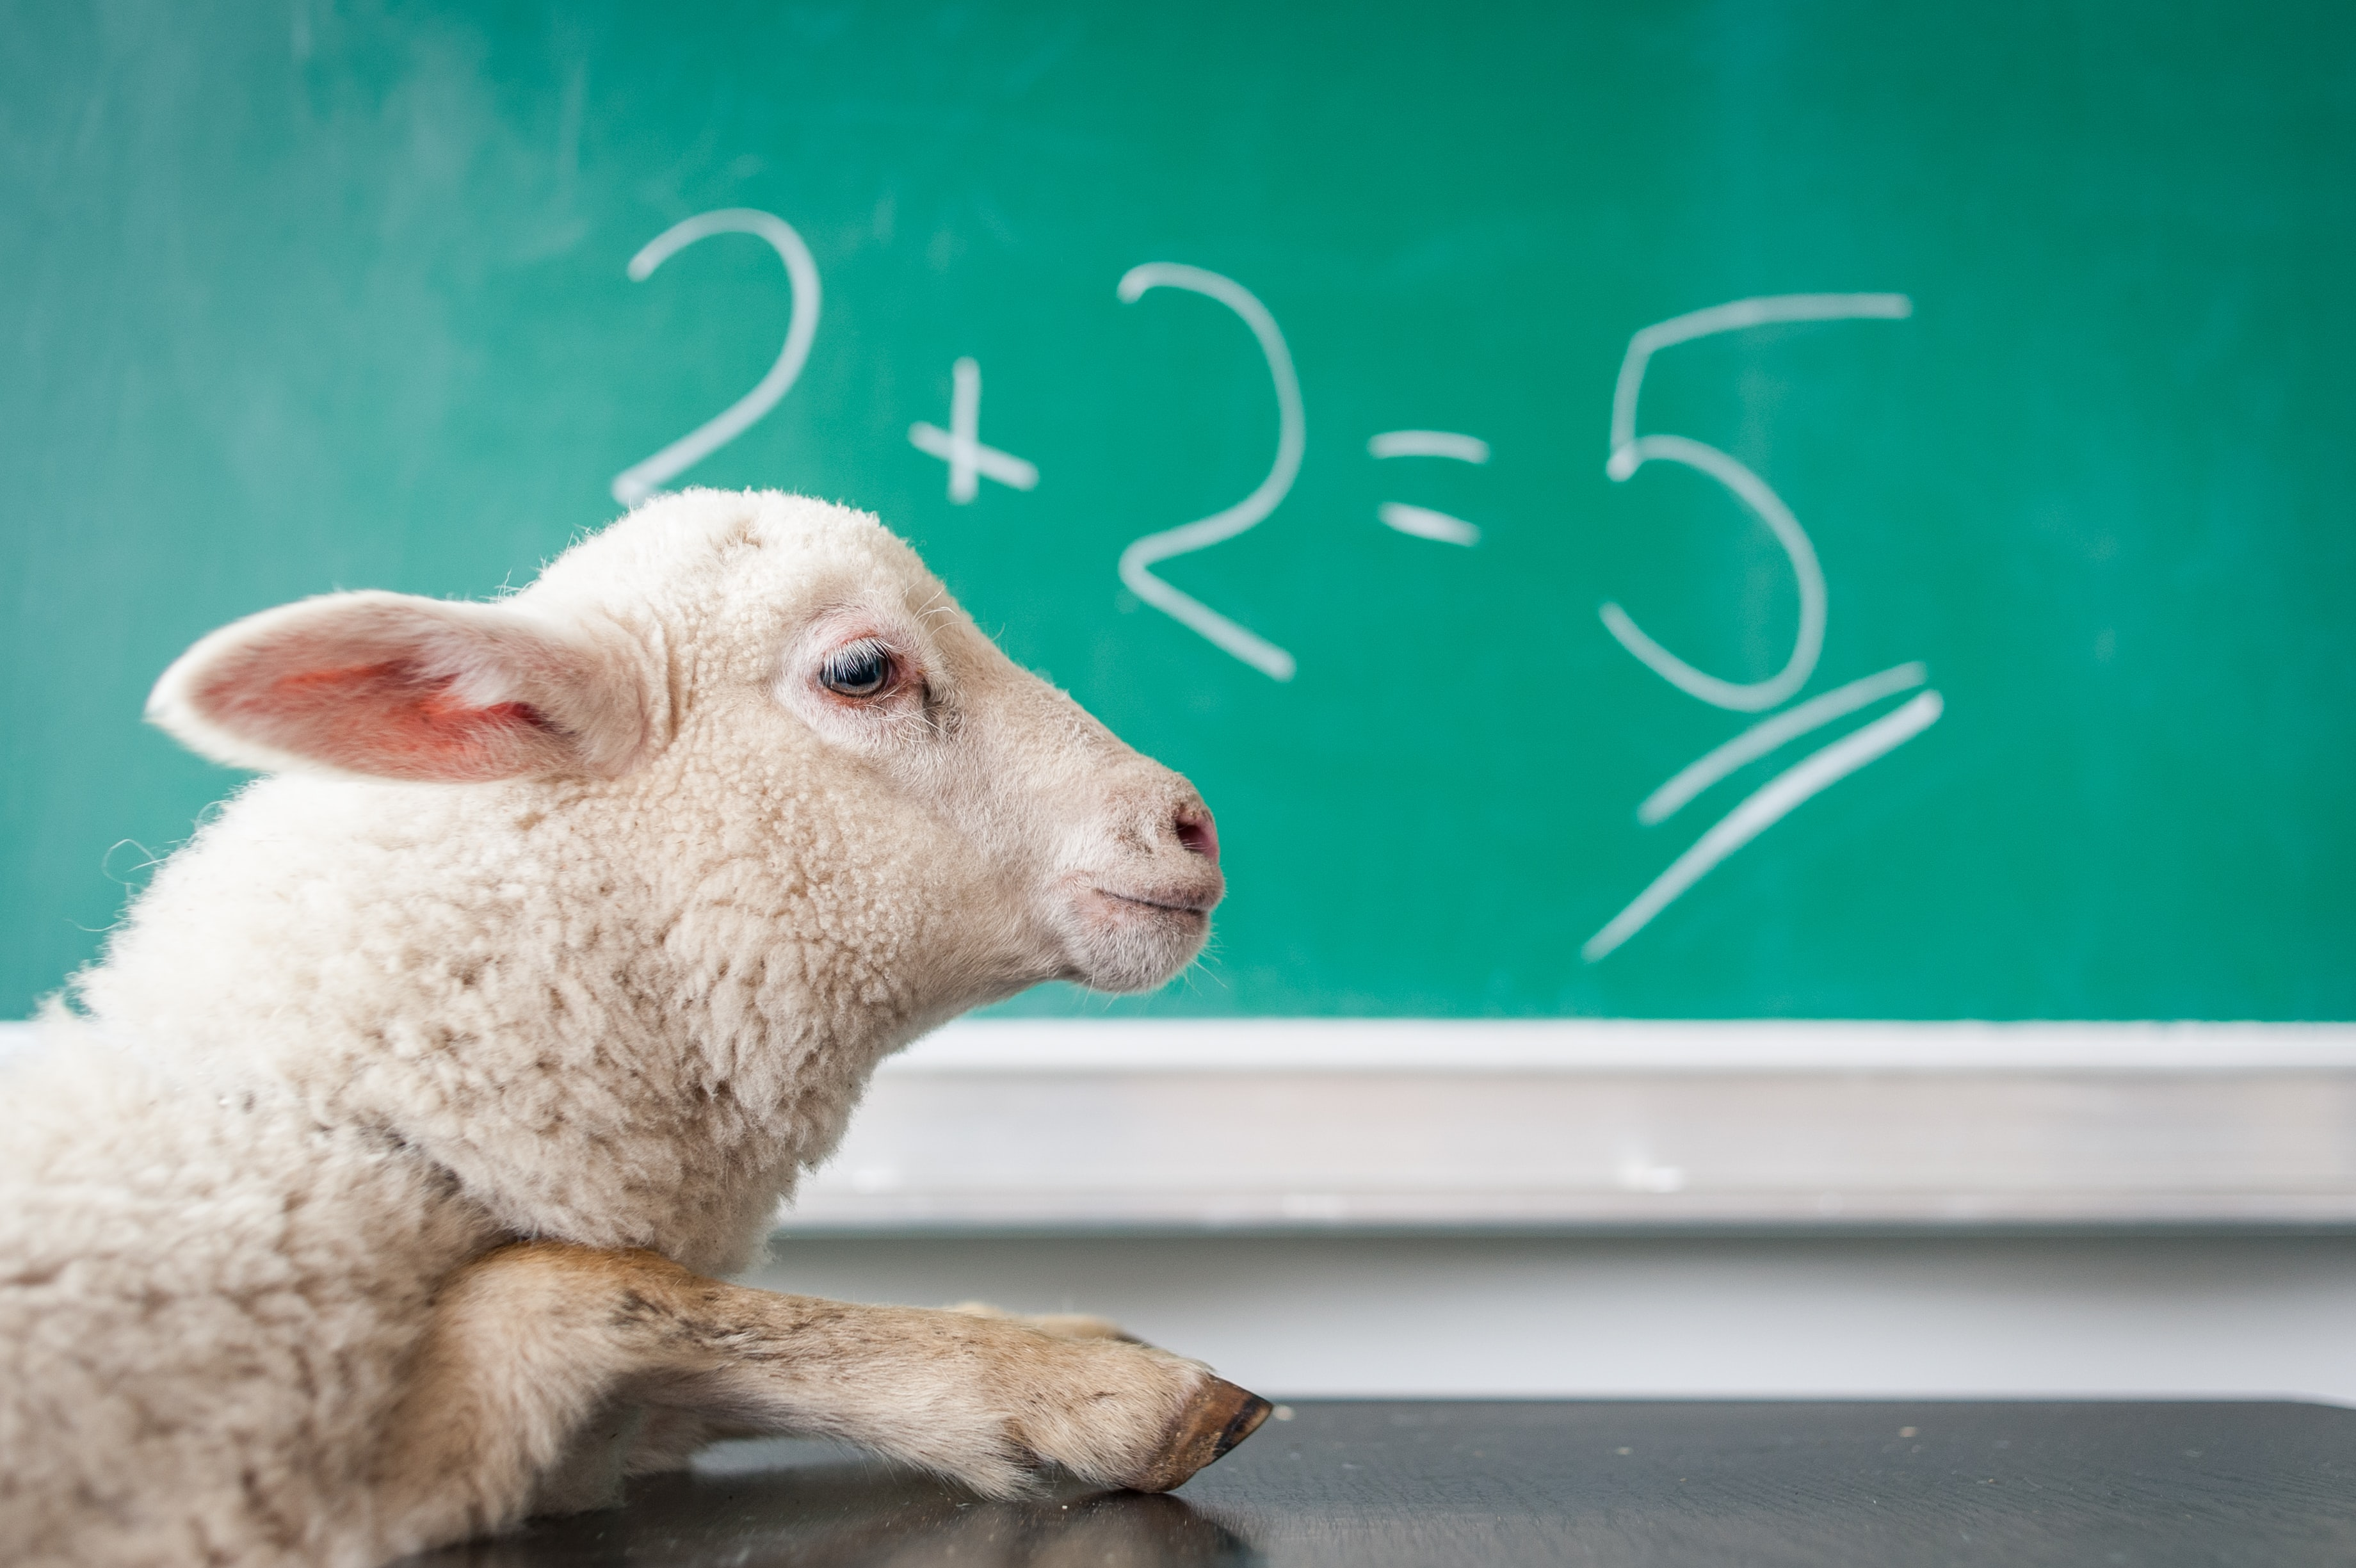 sheep in front of a blackboard that says 2+2=5